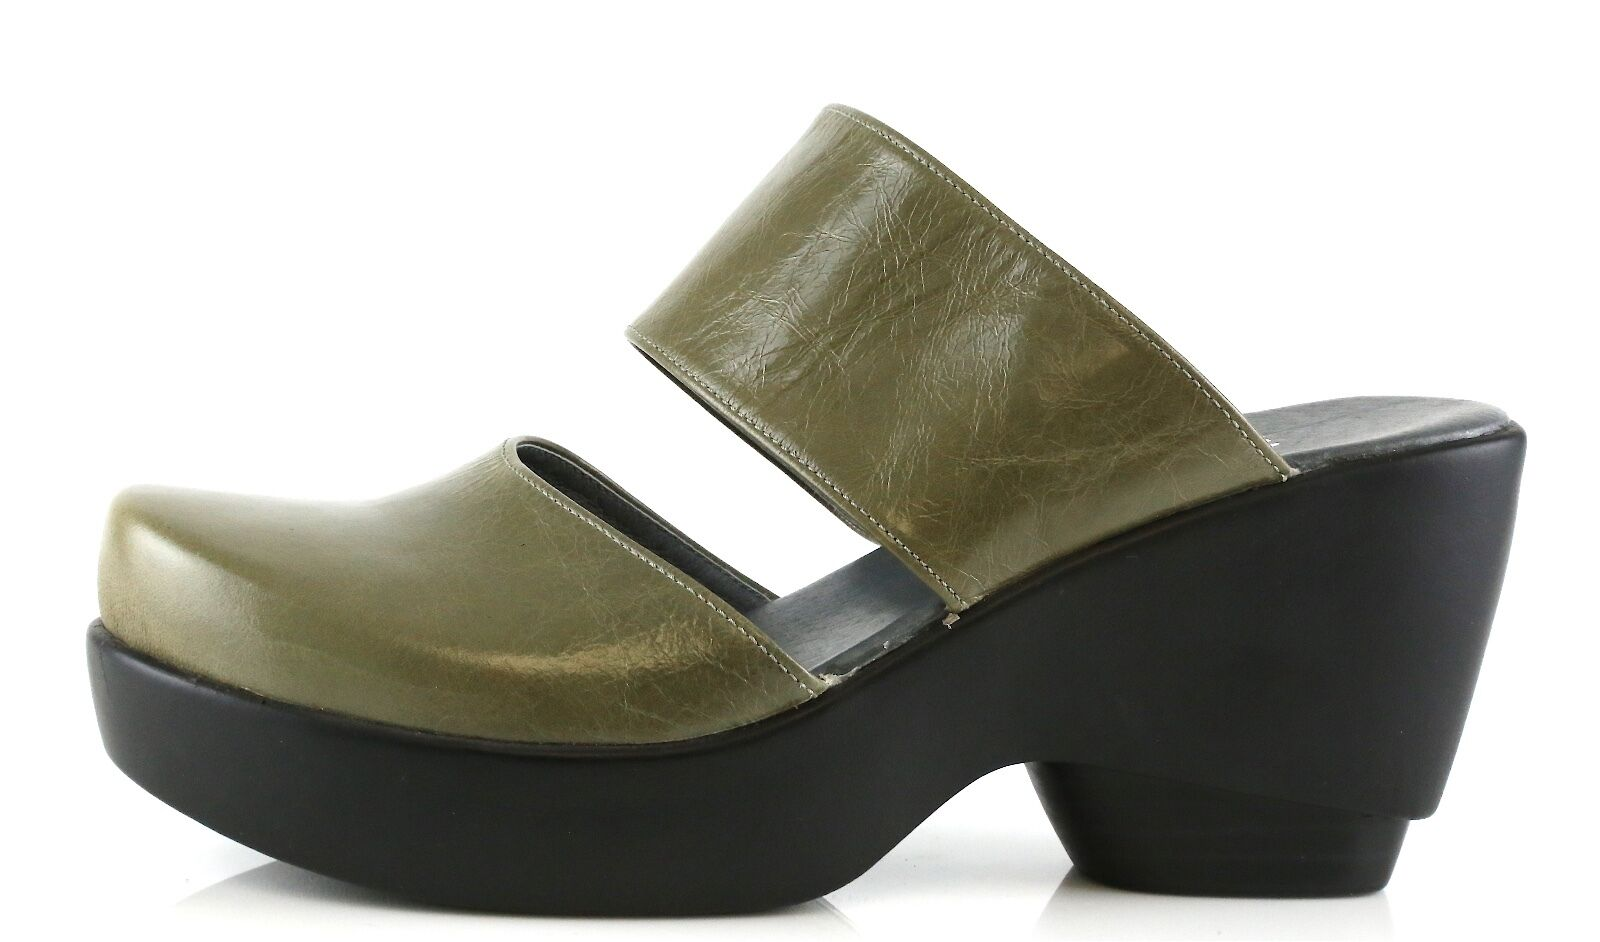 Antelope Woman's Olive Green Wedge Sandals 8836 Size 41 EU NEW